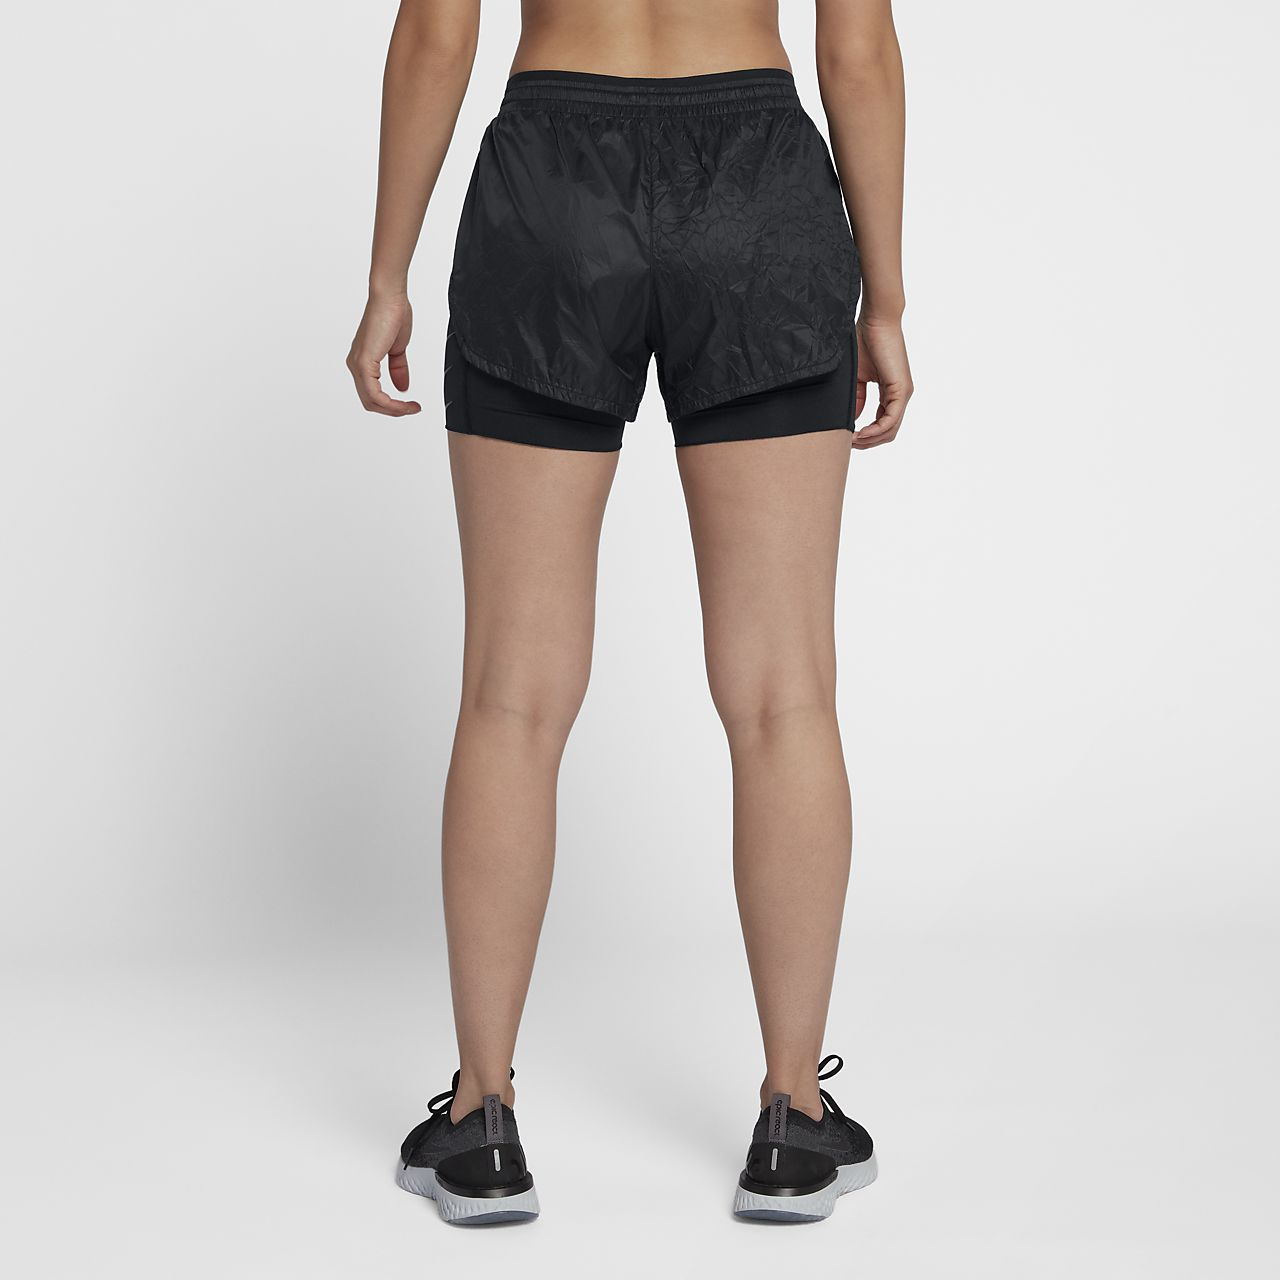 best deals on half price outlet online Nike Run Division Women's 2-in-1 Running Shorts